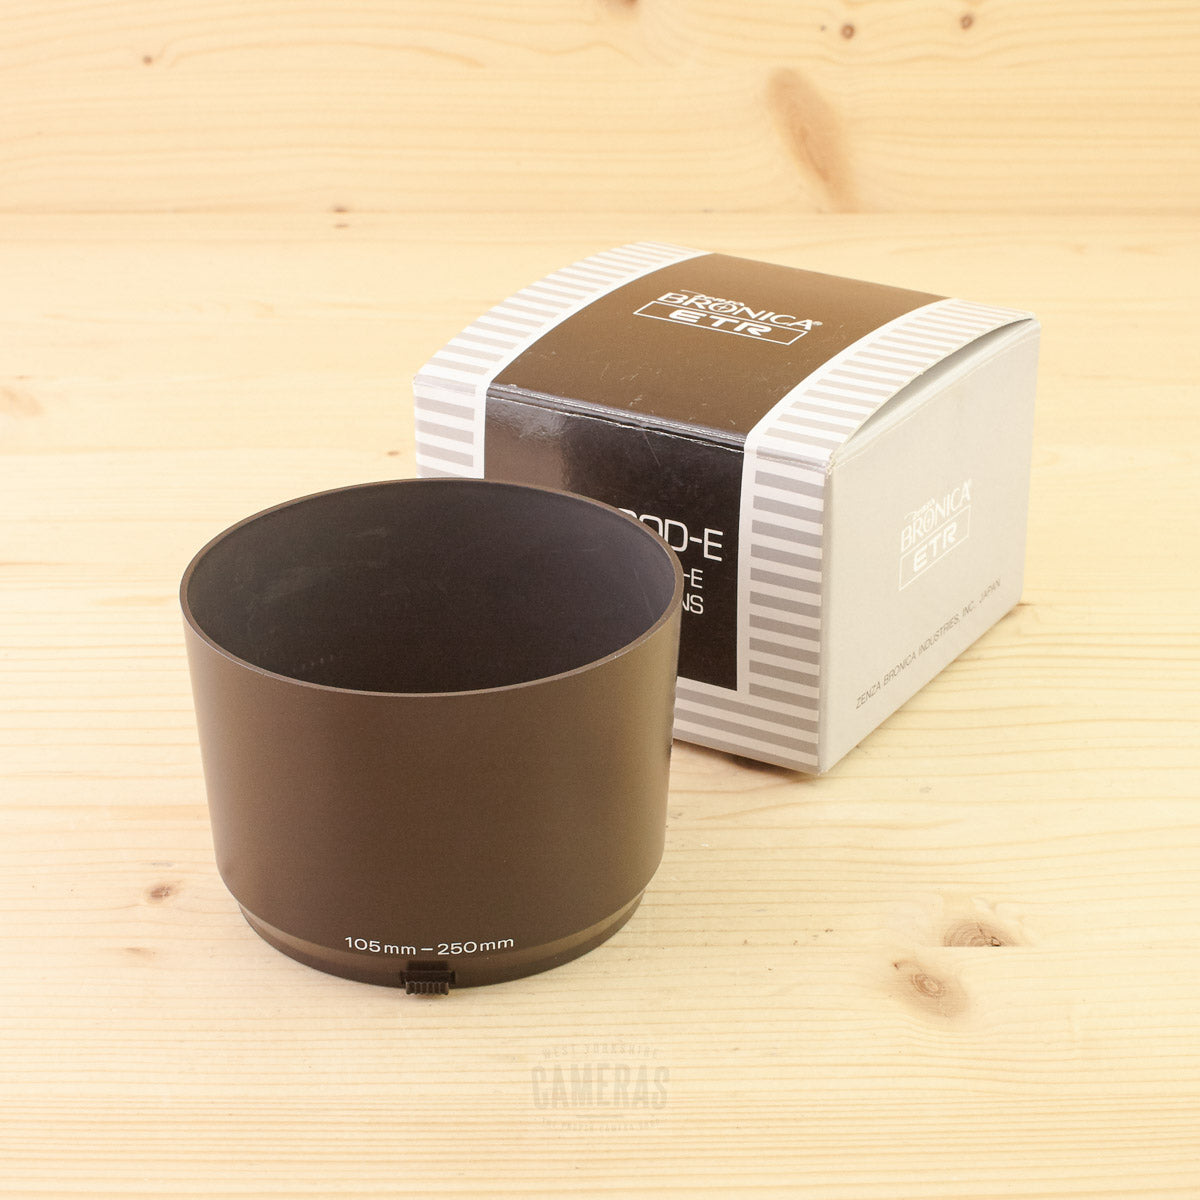 Bronica ETR Lens Hood E for 105/250mm Exc+ Boxed